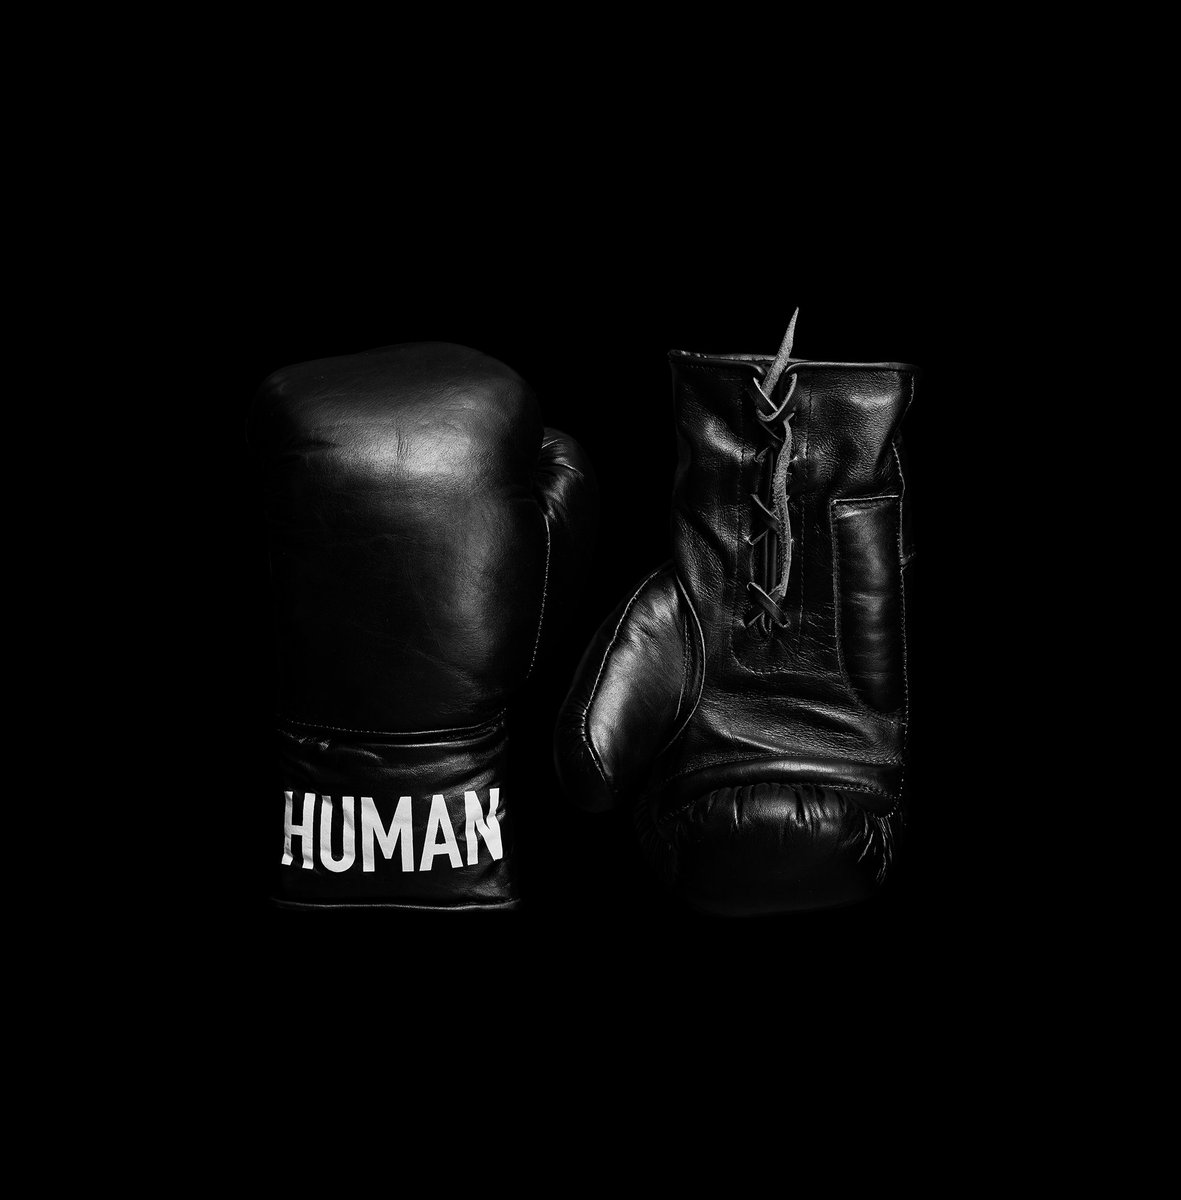 HUMAN Boxing | The Modest Vintage Player | 1 of 1  Available Now: